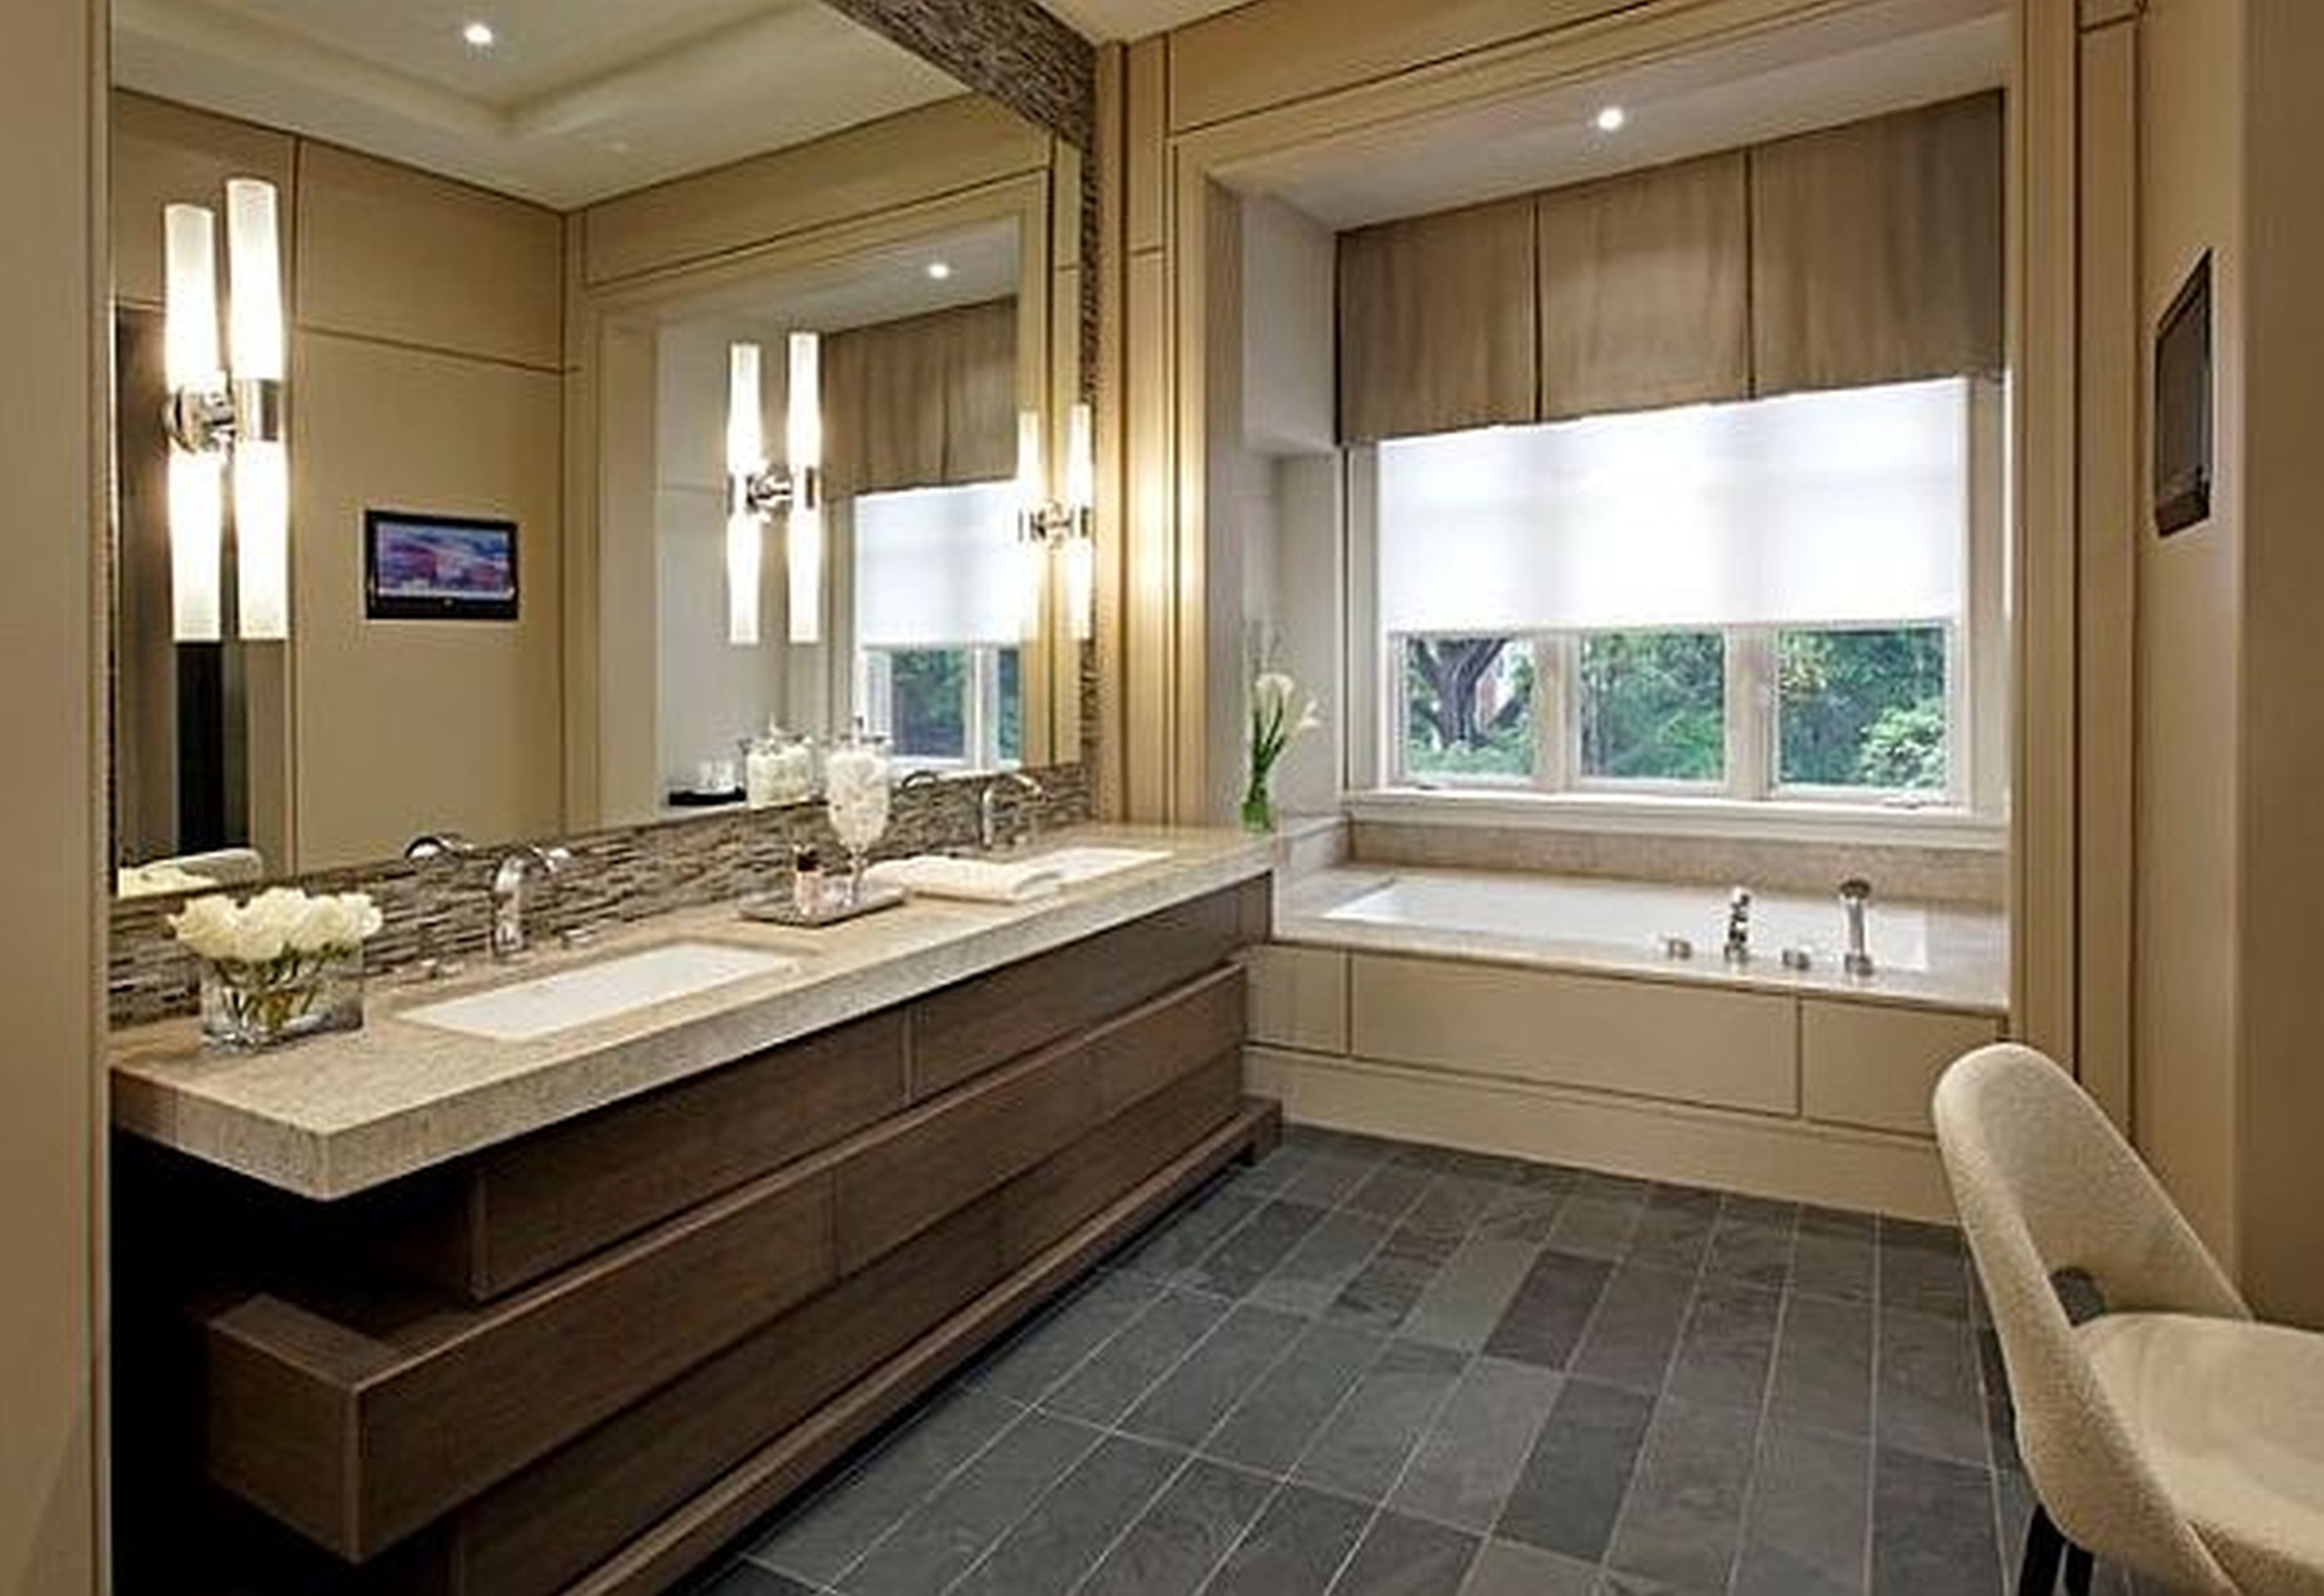 Effective Apartment Bathroom Decorated with Beautiful White Flowers on Vanity